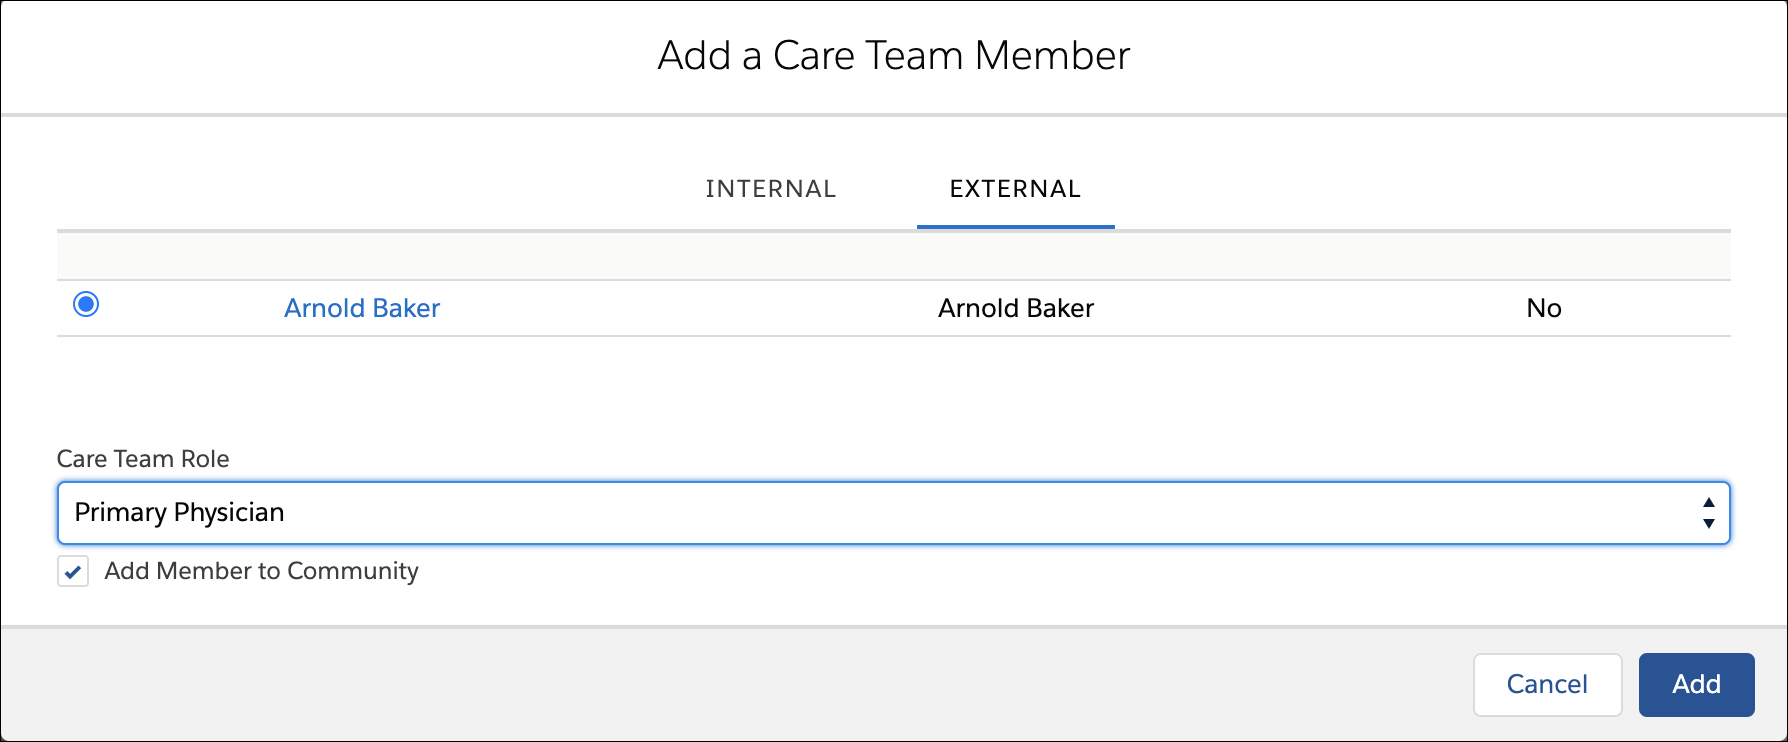 In the Add a Care Team Member screen, Arnold Baker is added to Elena's community as an external member with the Primary Physician role.